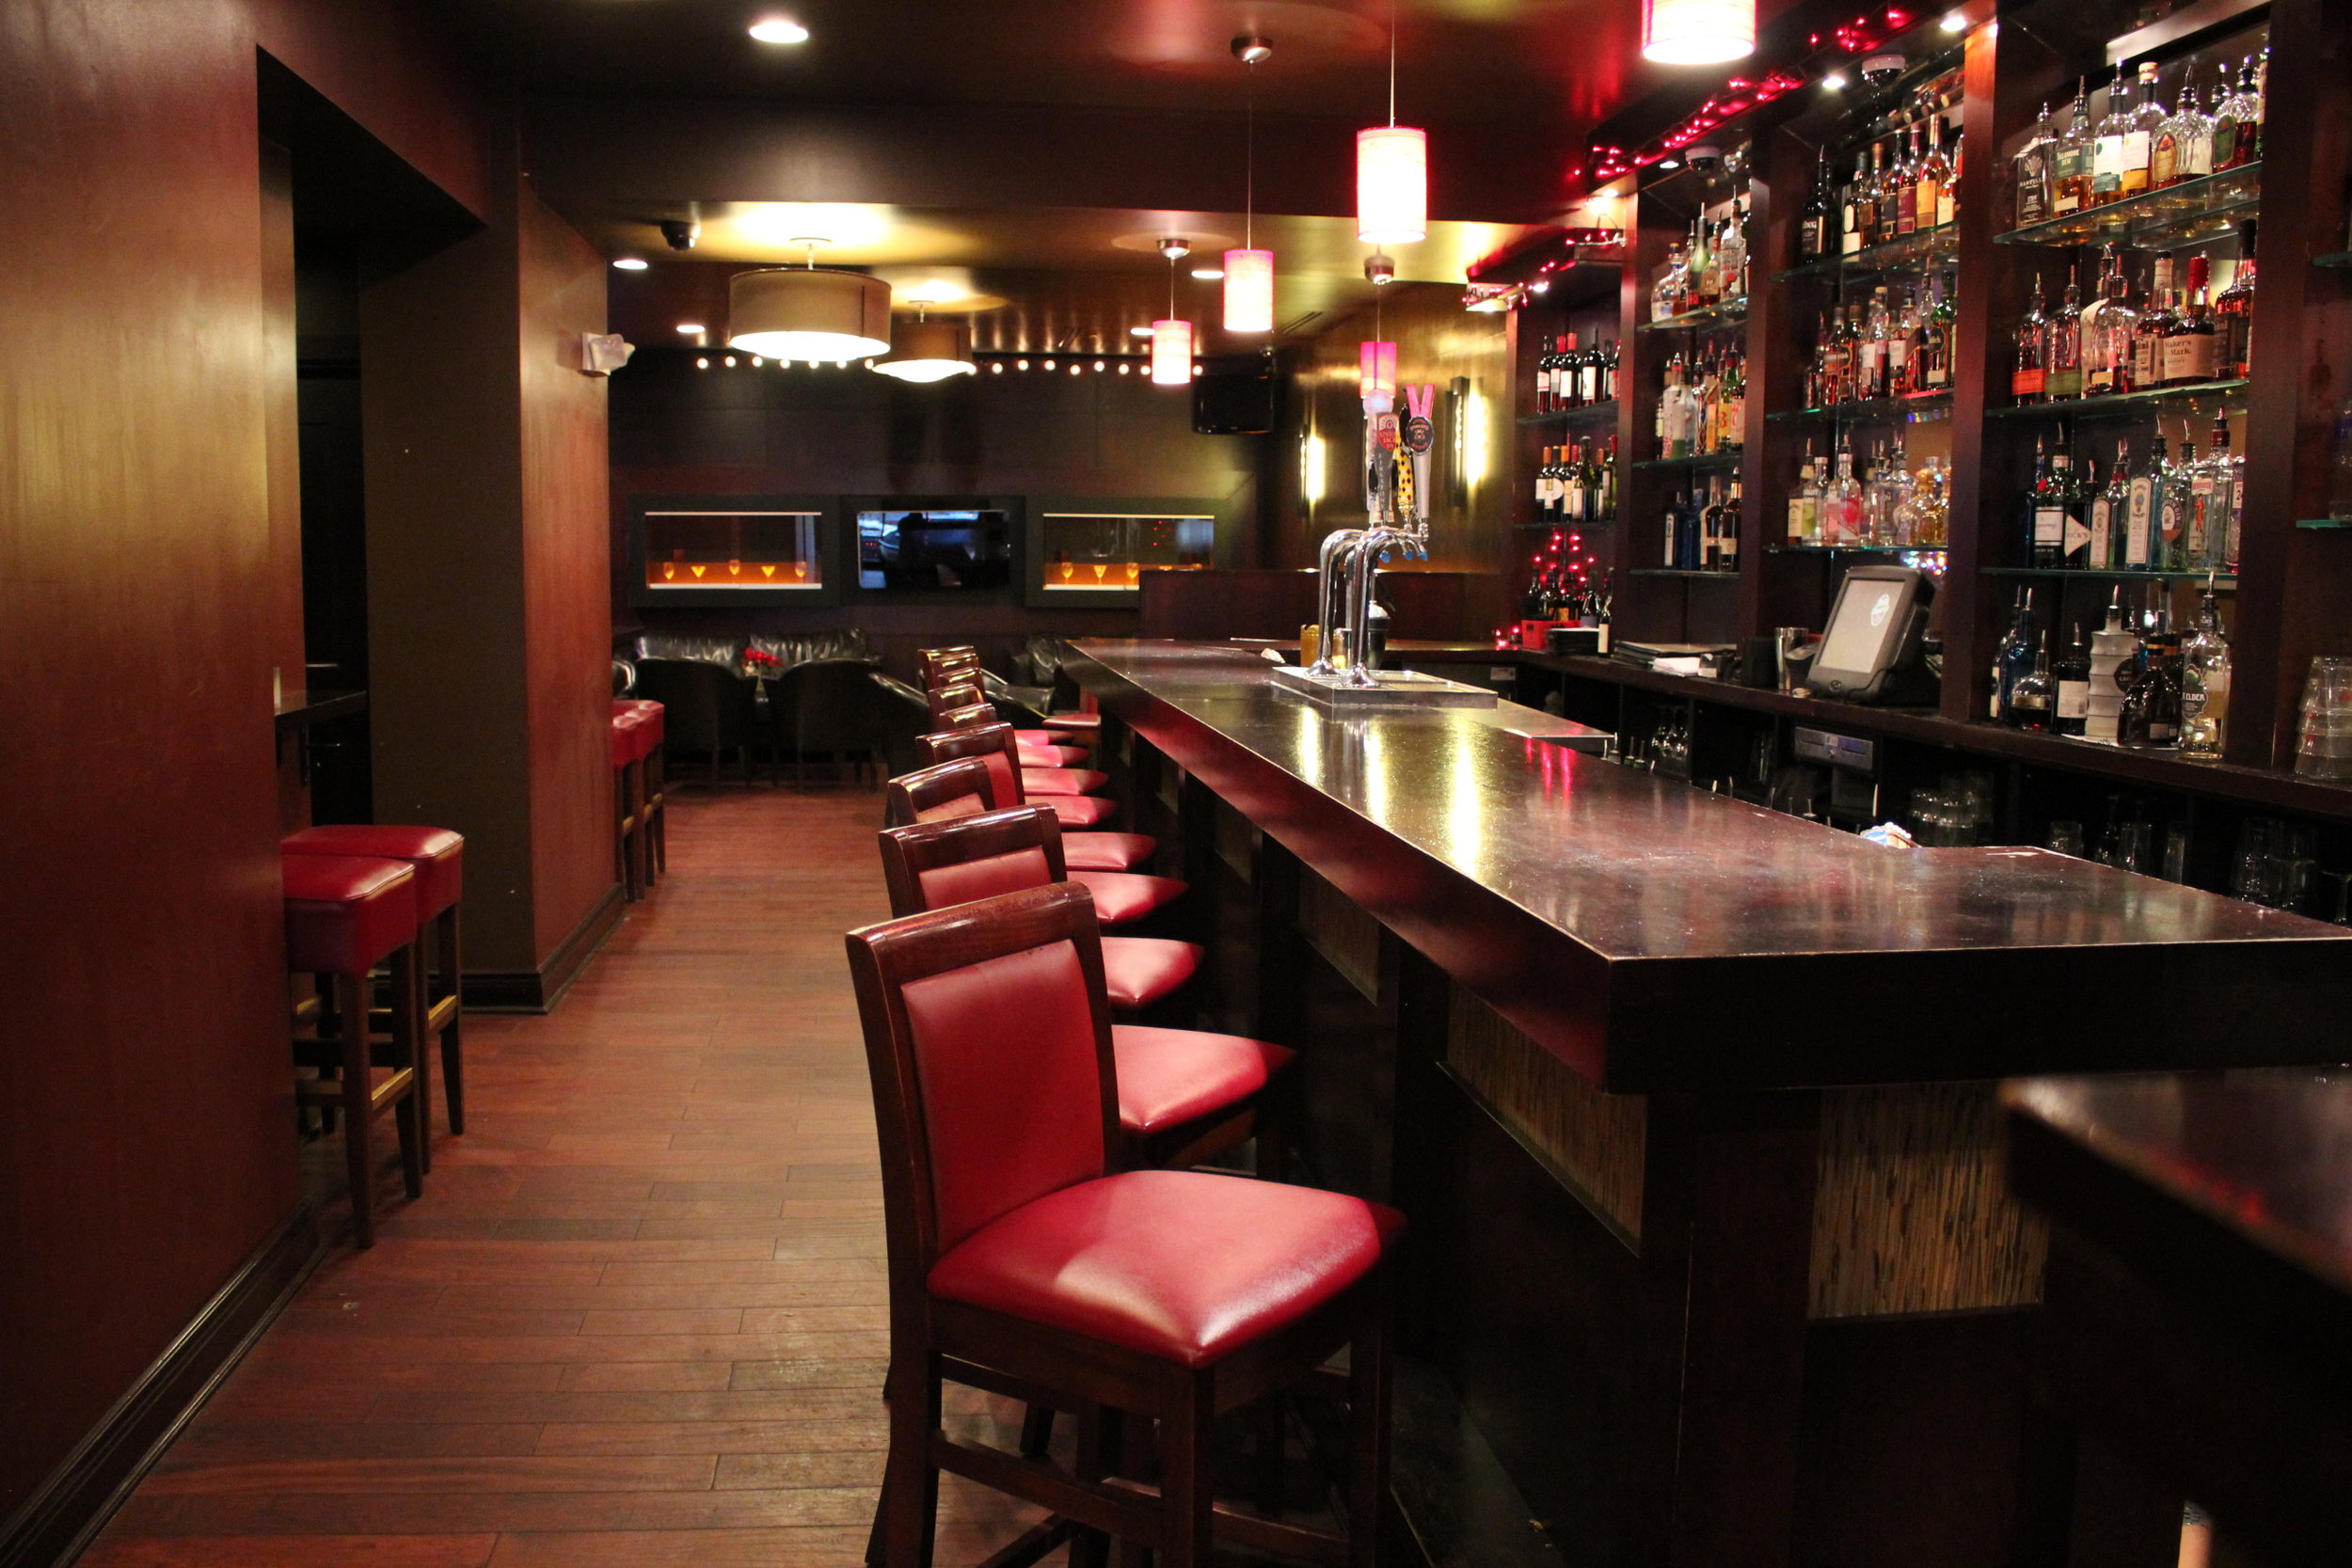 Bar in fenix room showing bottles on shelves and red chairs in front of bar.